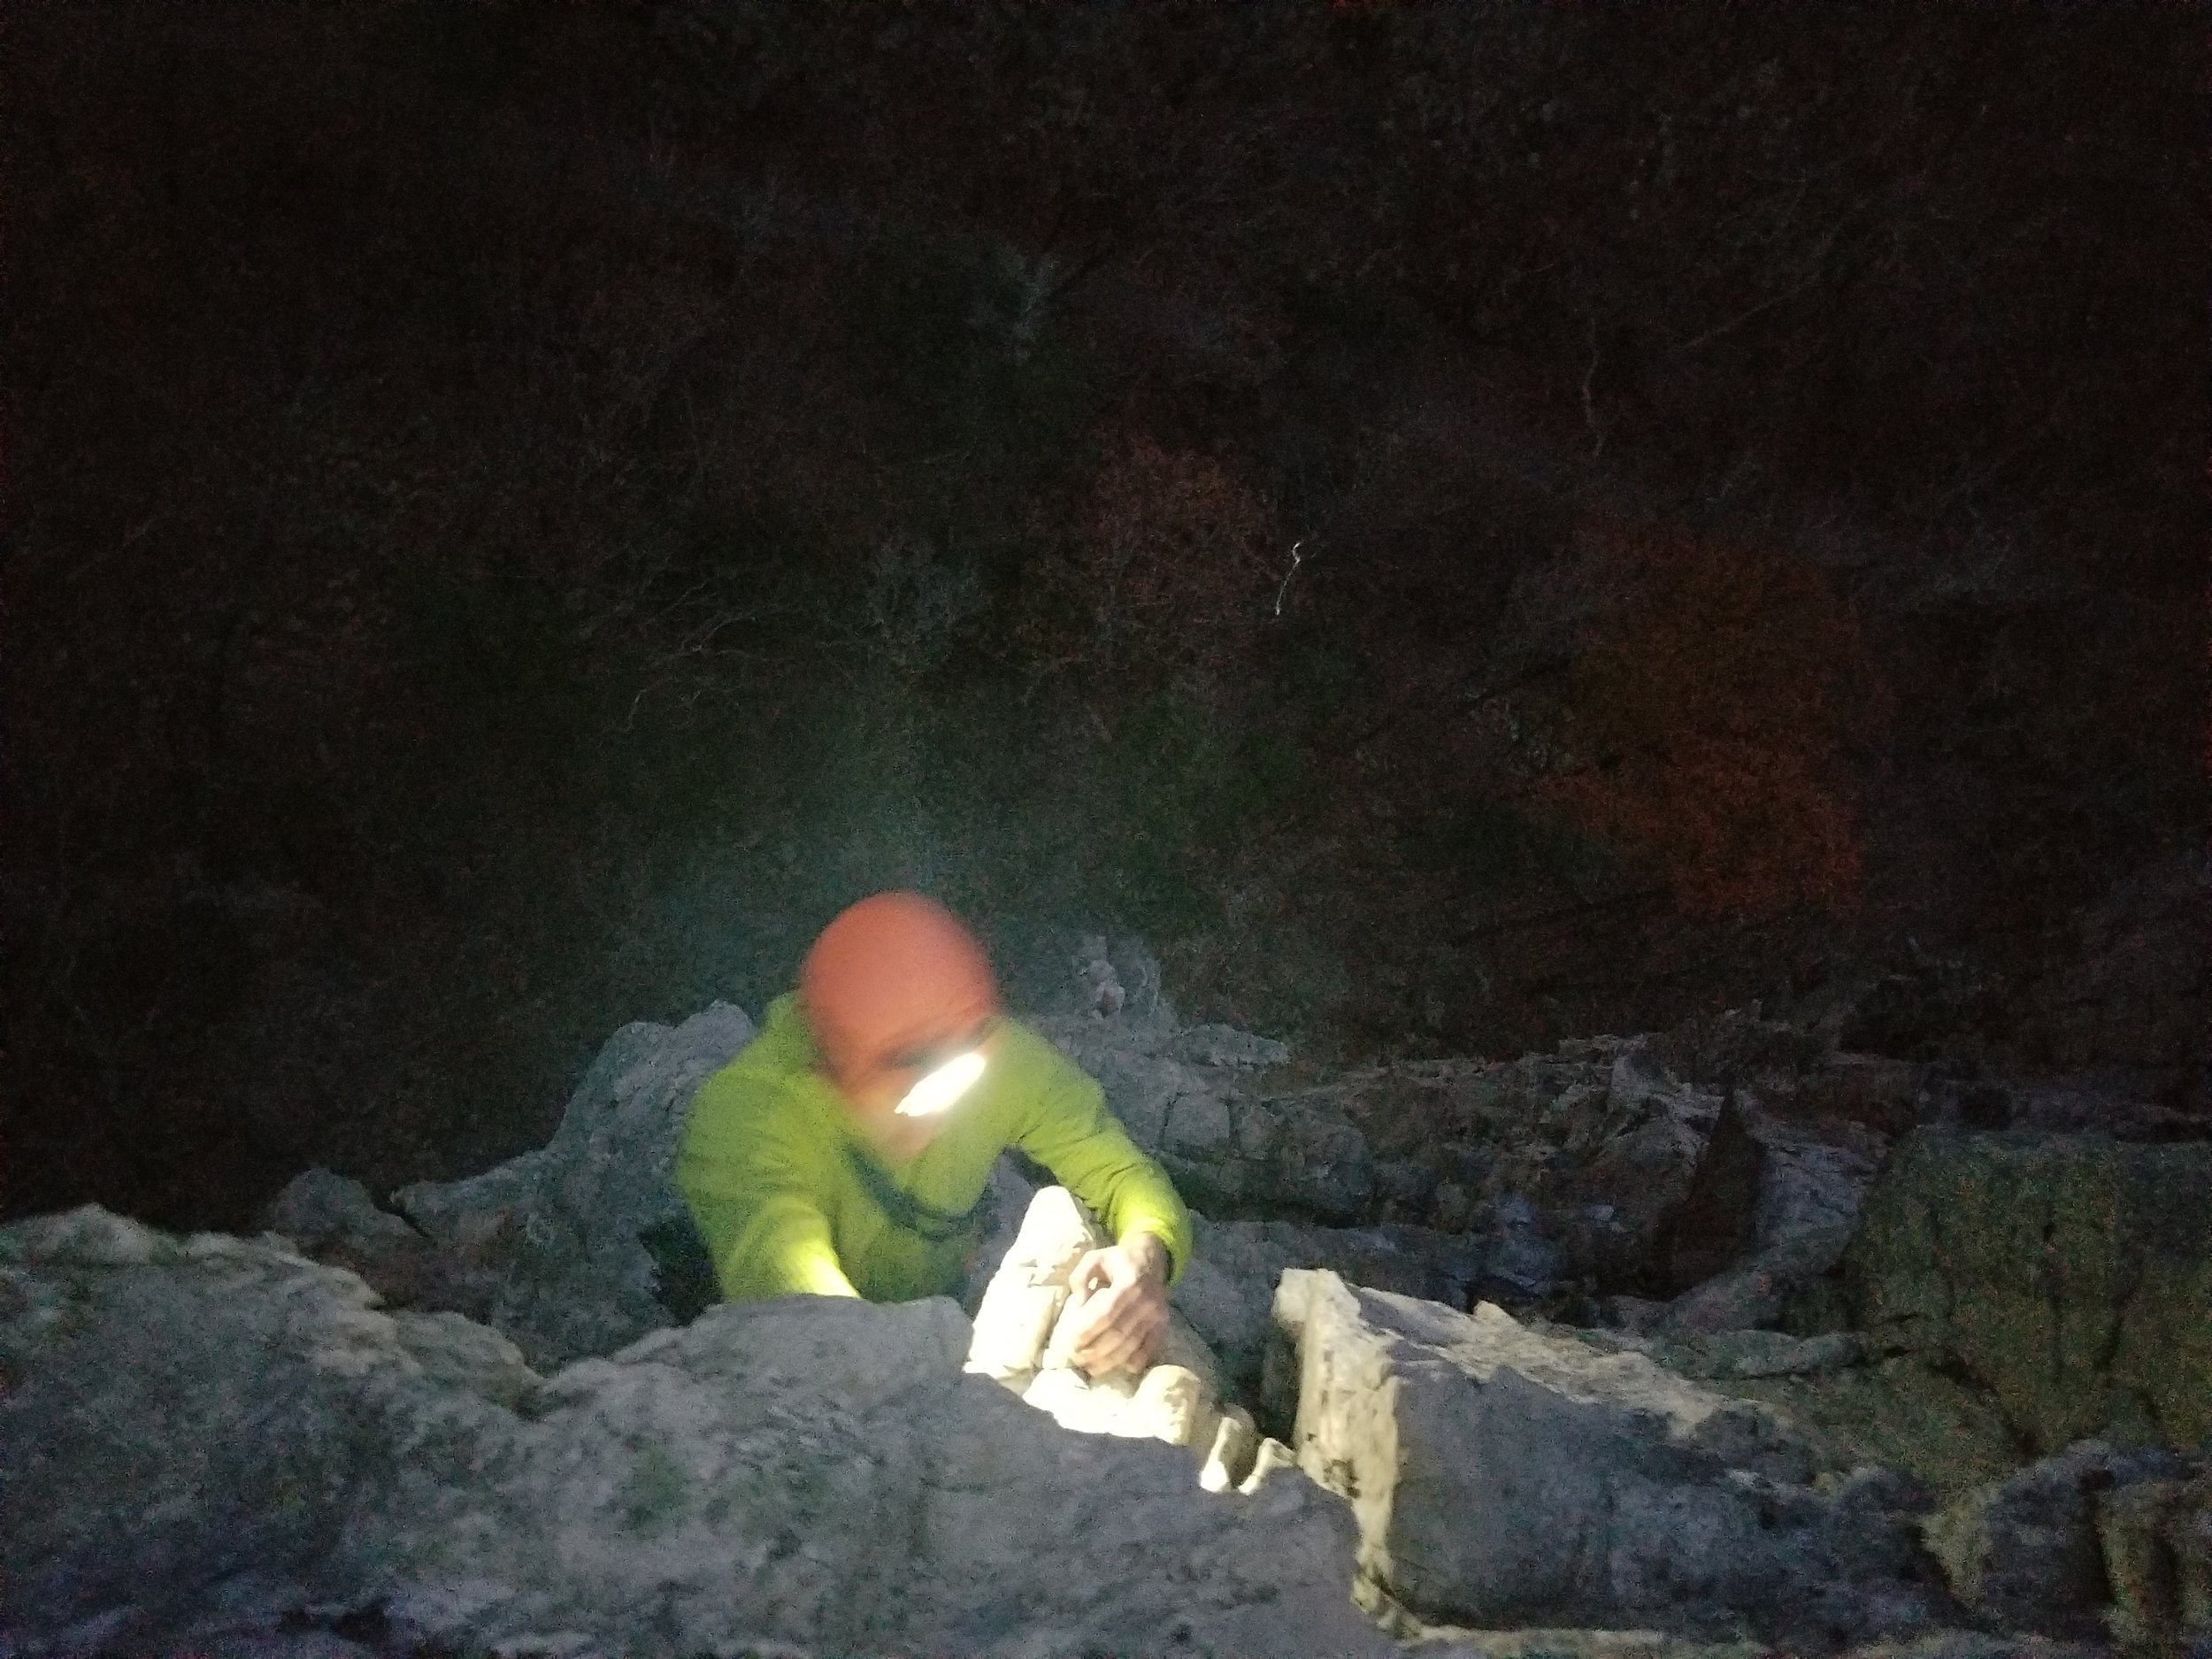 Finishing a route at Seneca Rocks as the sun set, we are greeted by hoots of owls and coyotes in the distance.